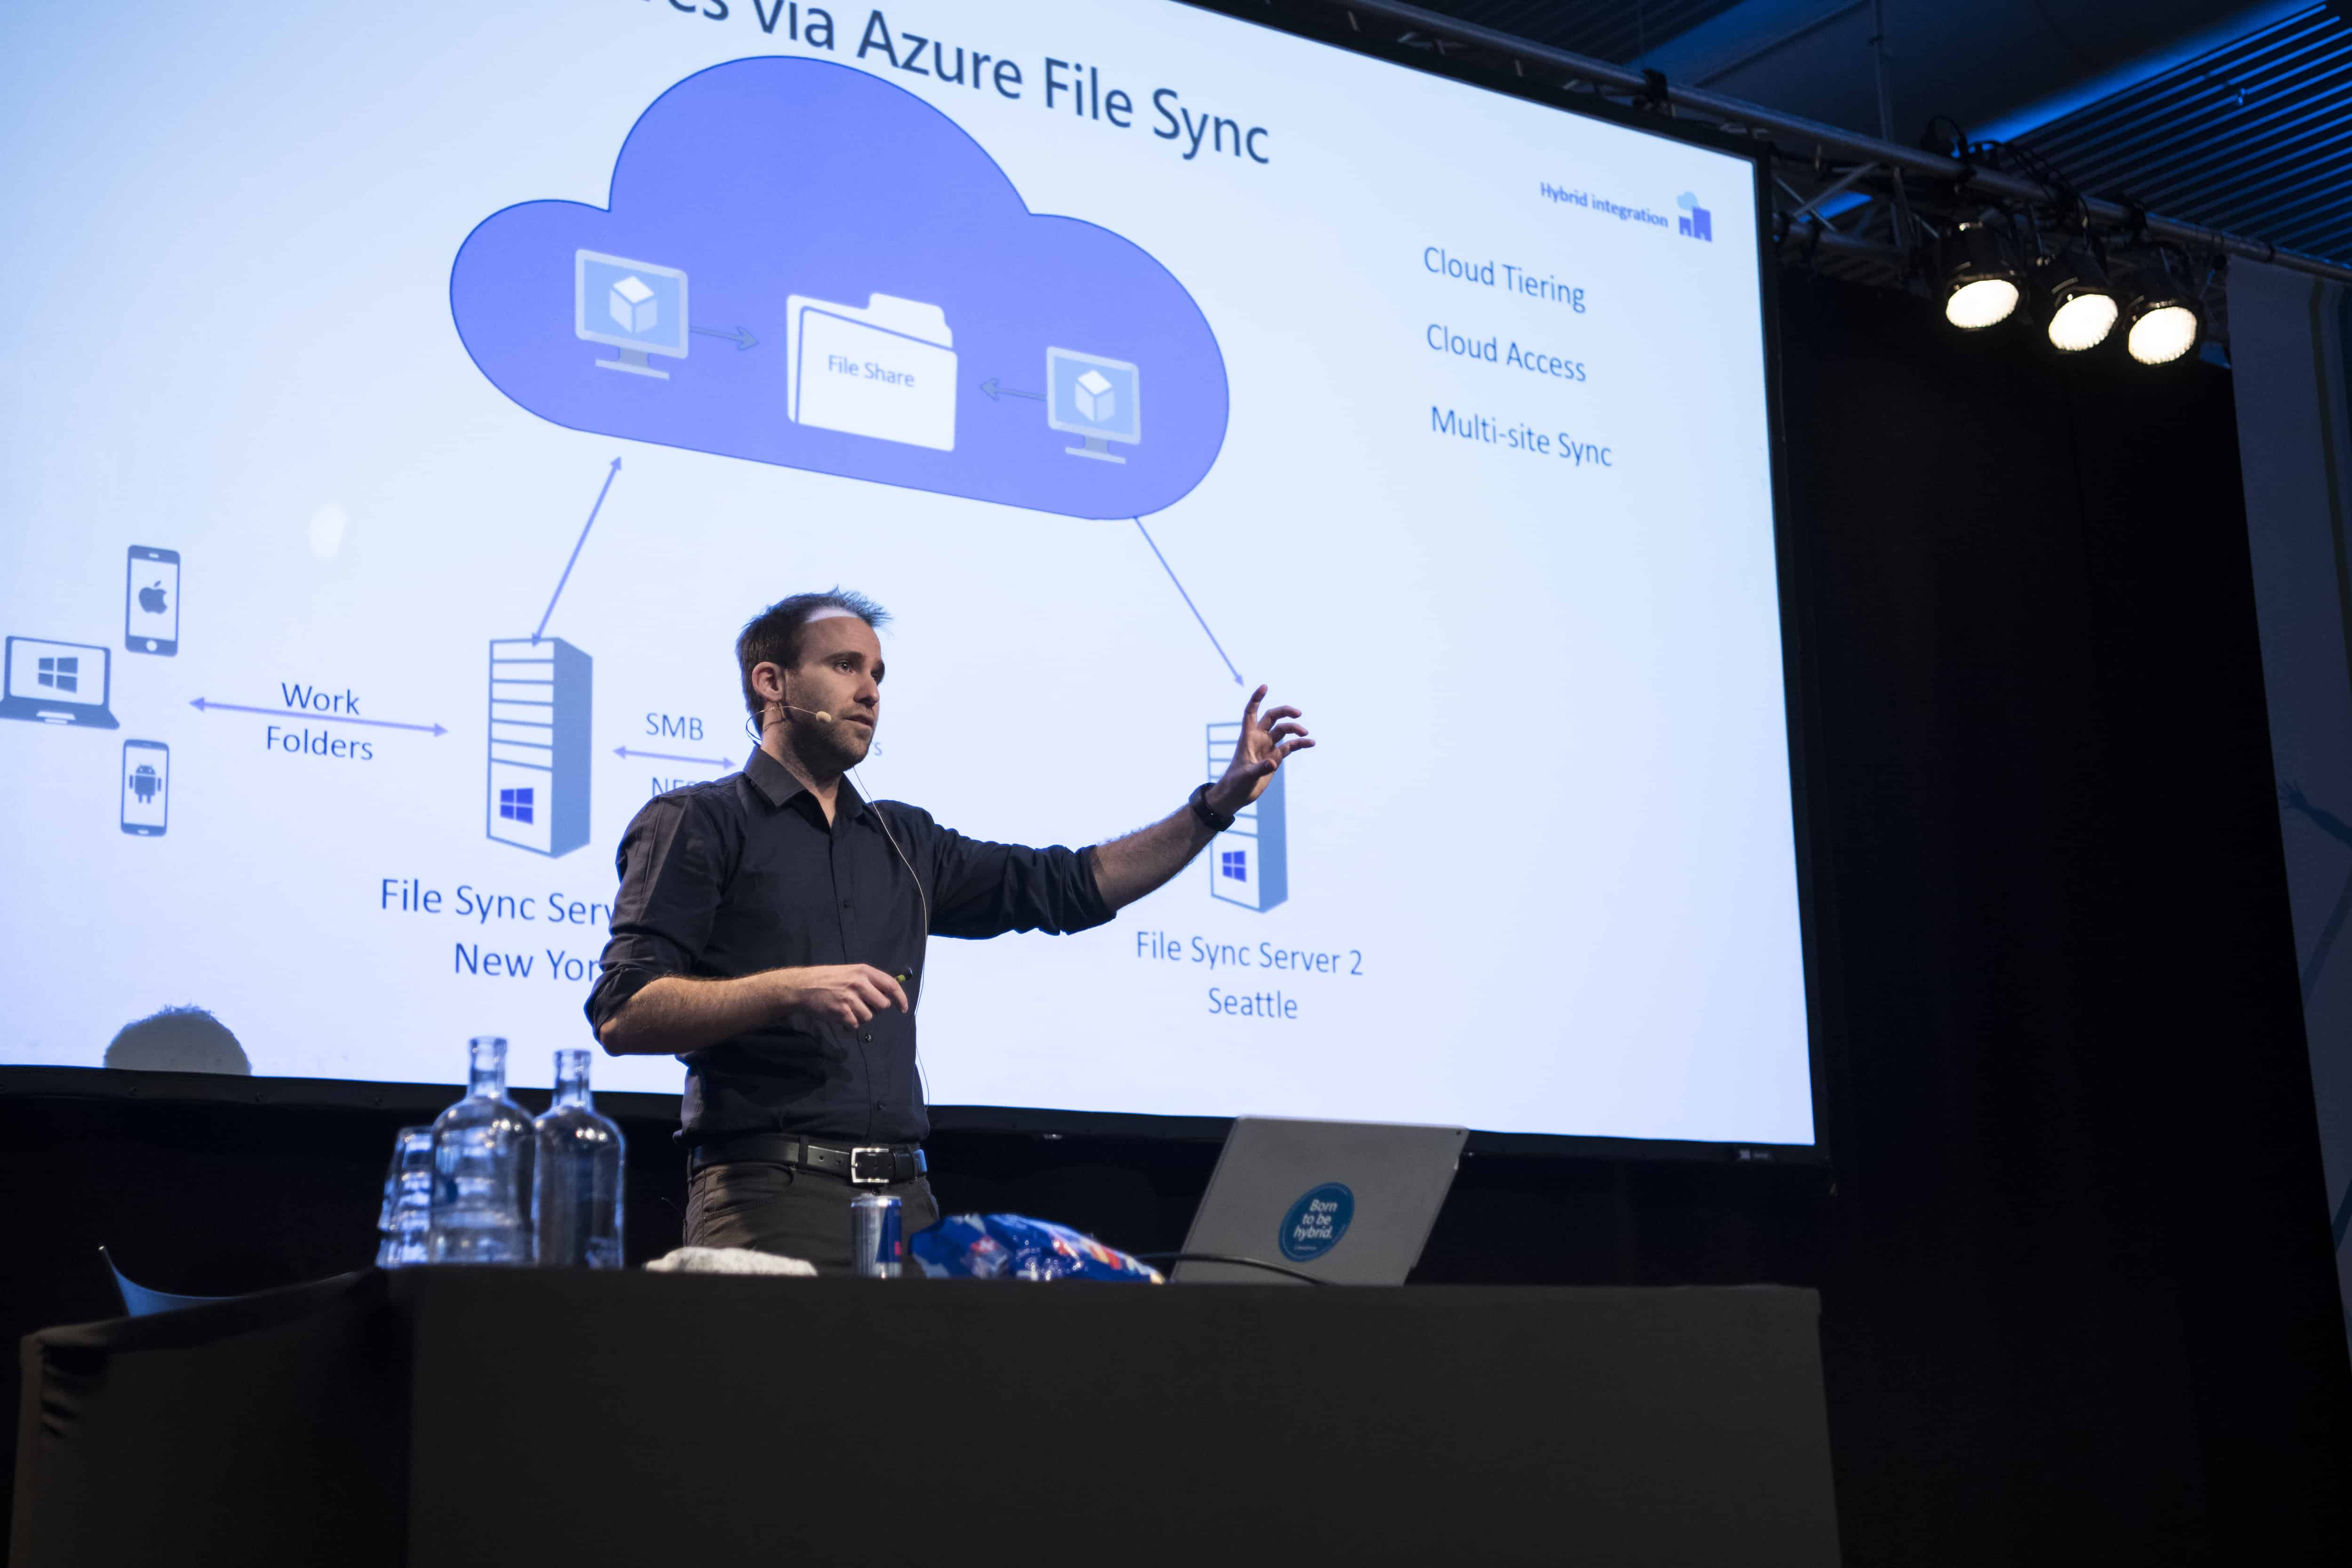 Experts Live Presenting Azure file Sync